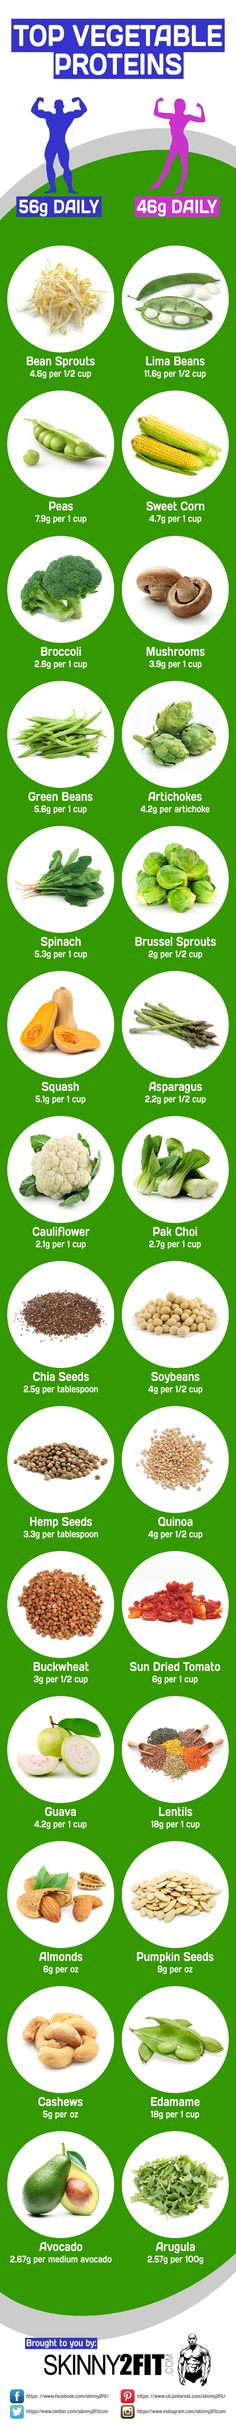 Protein is essential for both muscle growth and repair, with men typically needing 56 grams daily and women typically need 46 grams daily. Meat, dairy and eggs are all good sources of protein, but there are vegetable proteins too. Here are some of the top vegetable proteins you could add to your diet.